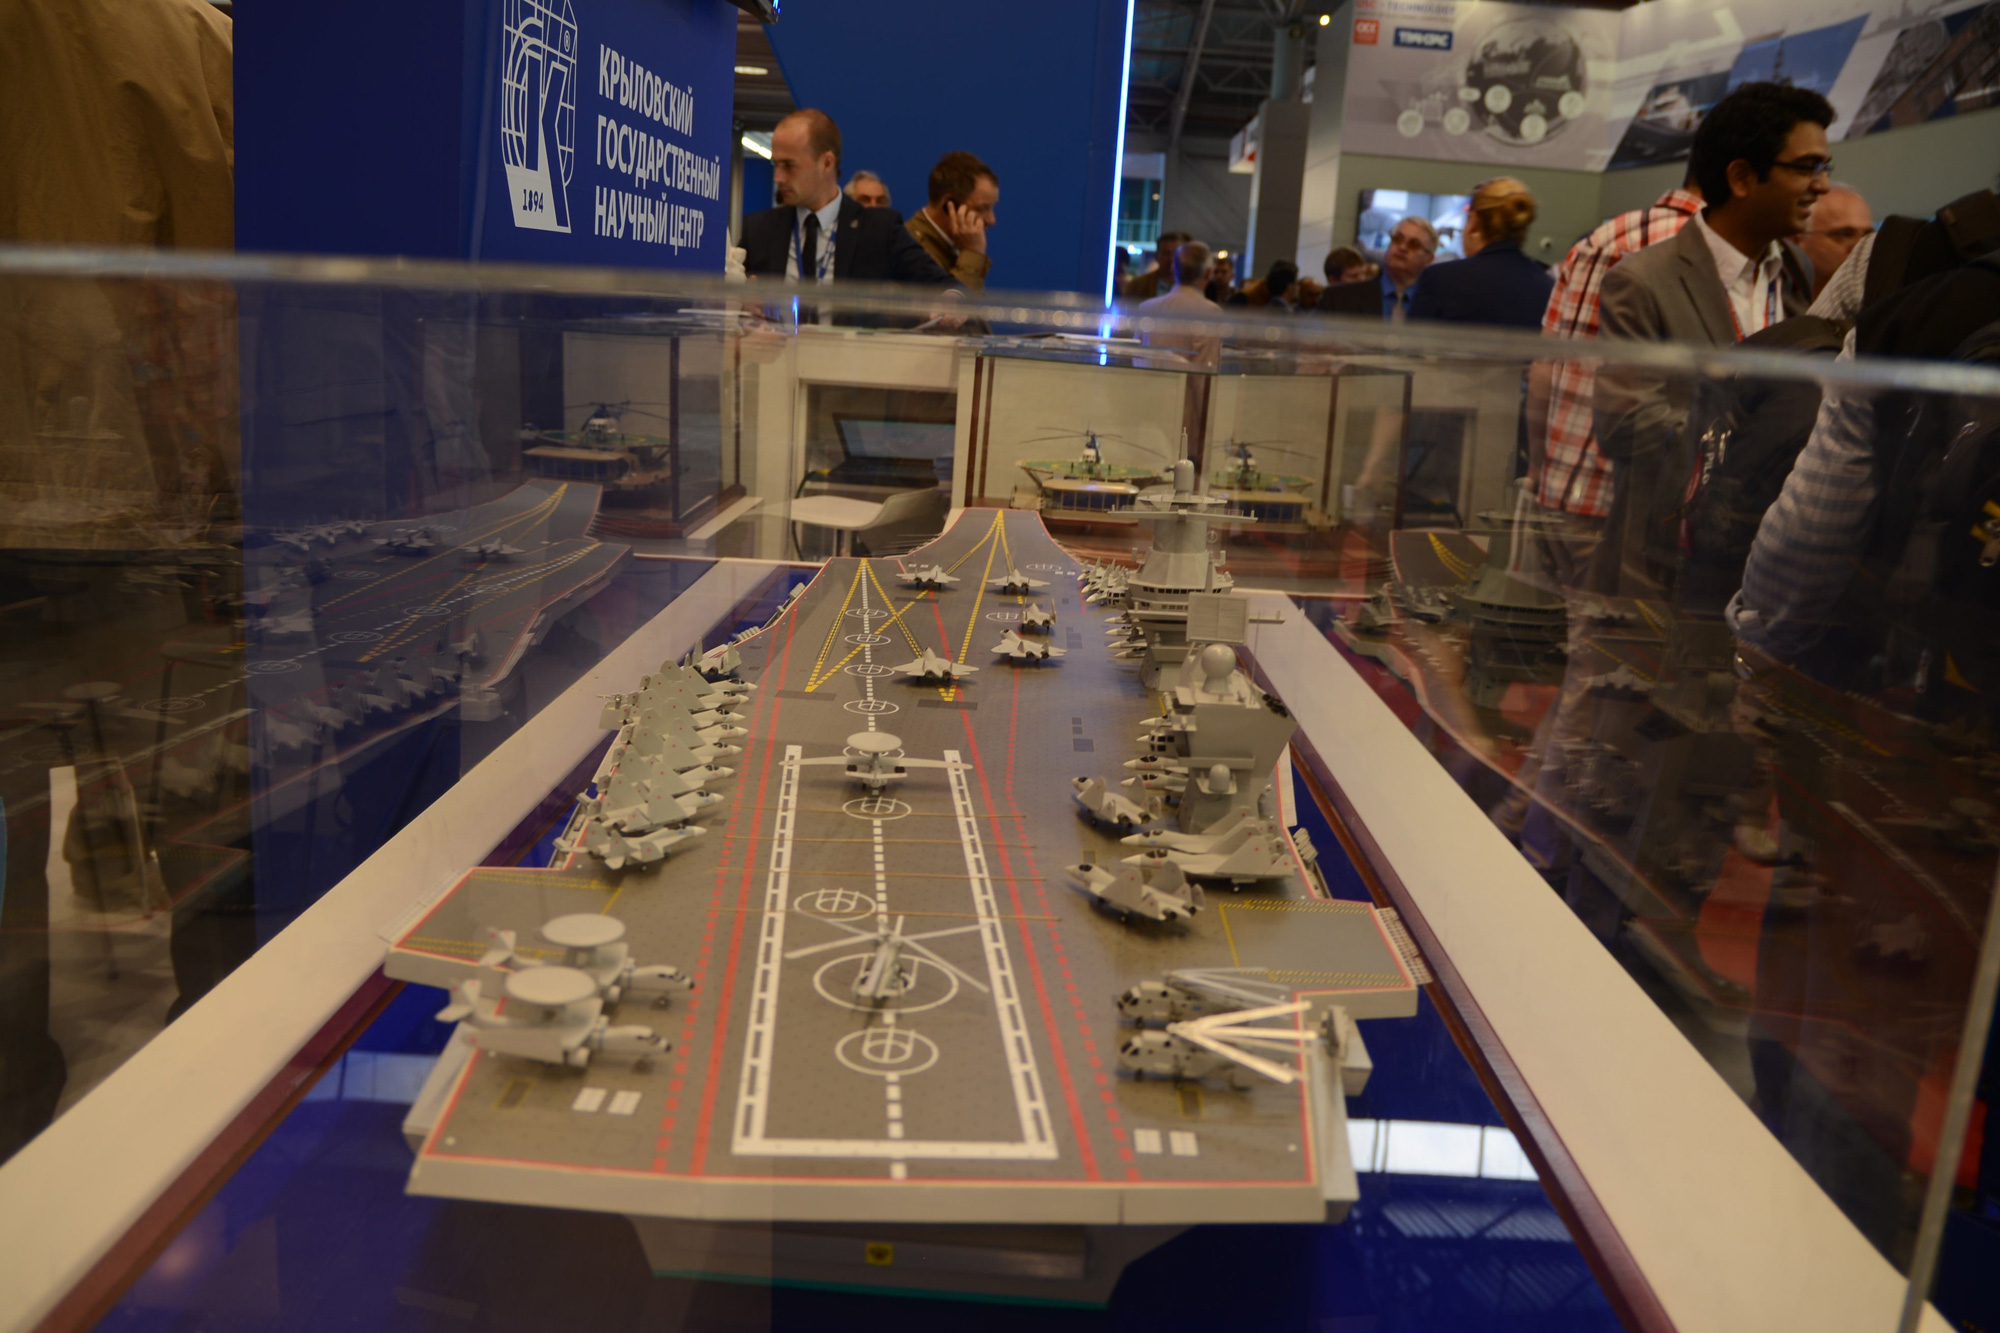 Aircraft carrier models large scale - A Scale Model Of A Large Aircraft Carrier On Display At A Maritime And Defense Show In St Petersburg Russia Photo Vladimir Karnozov